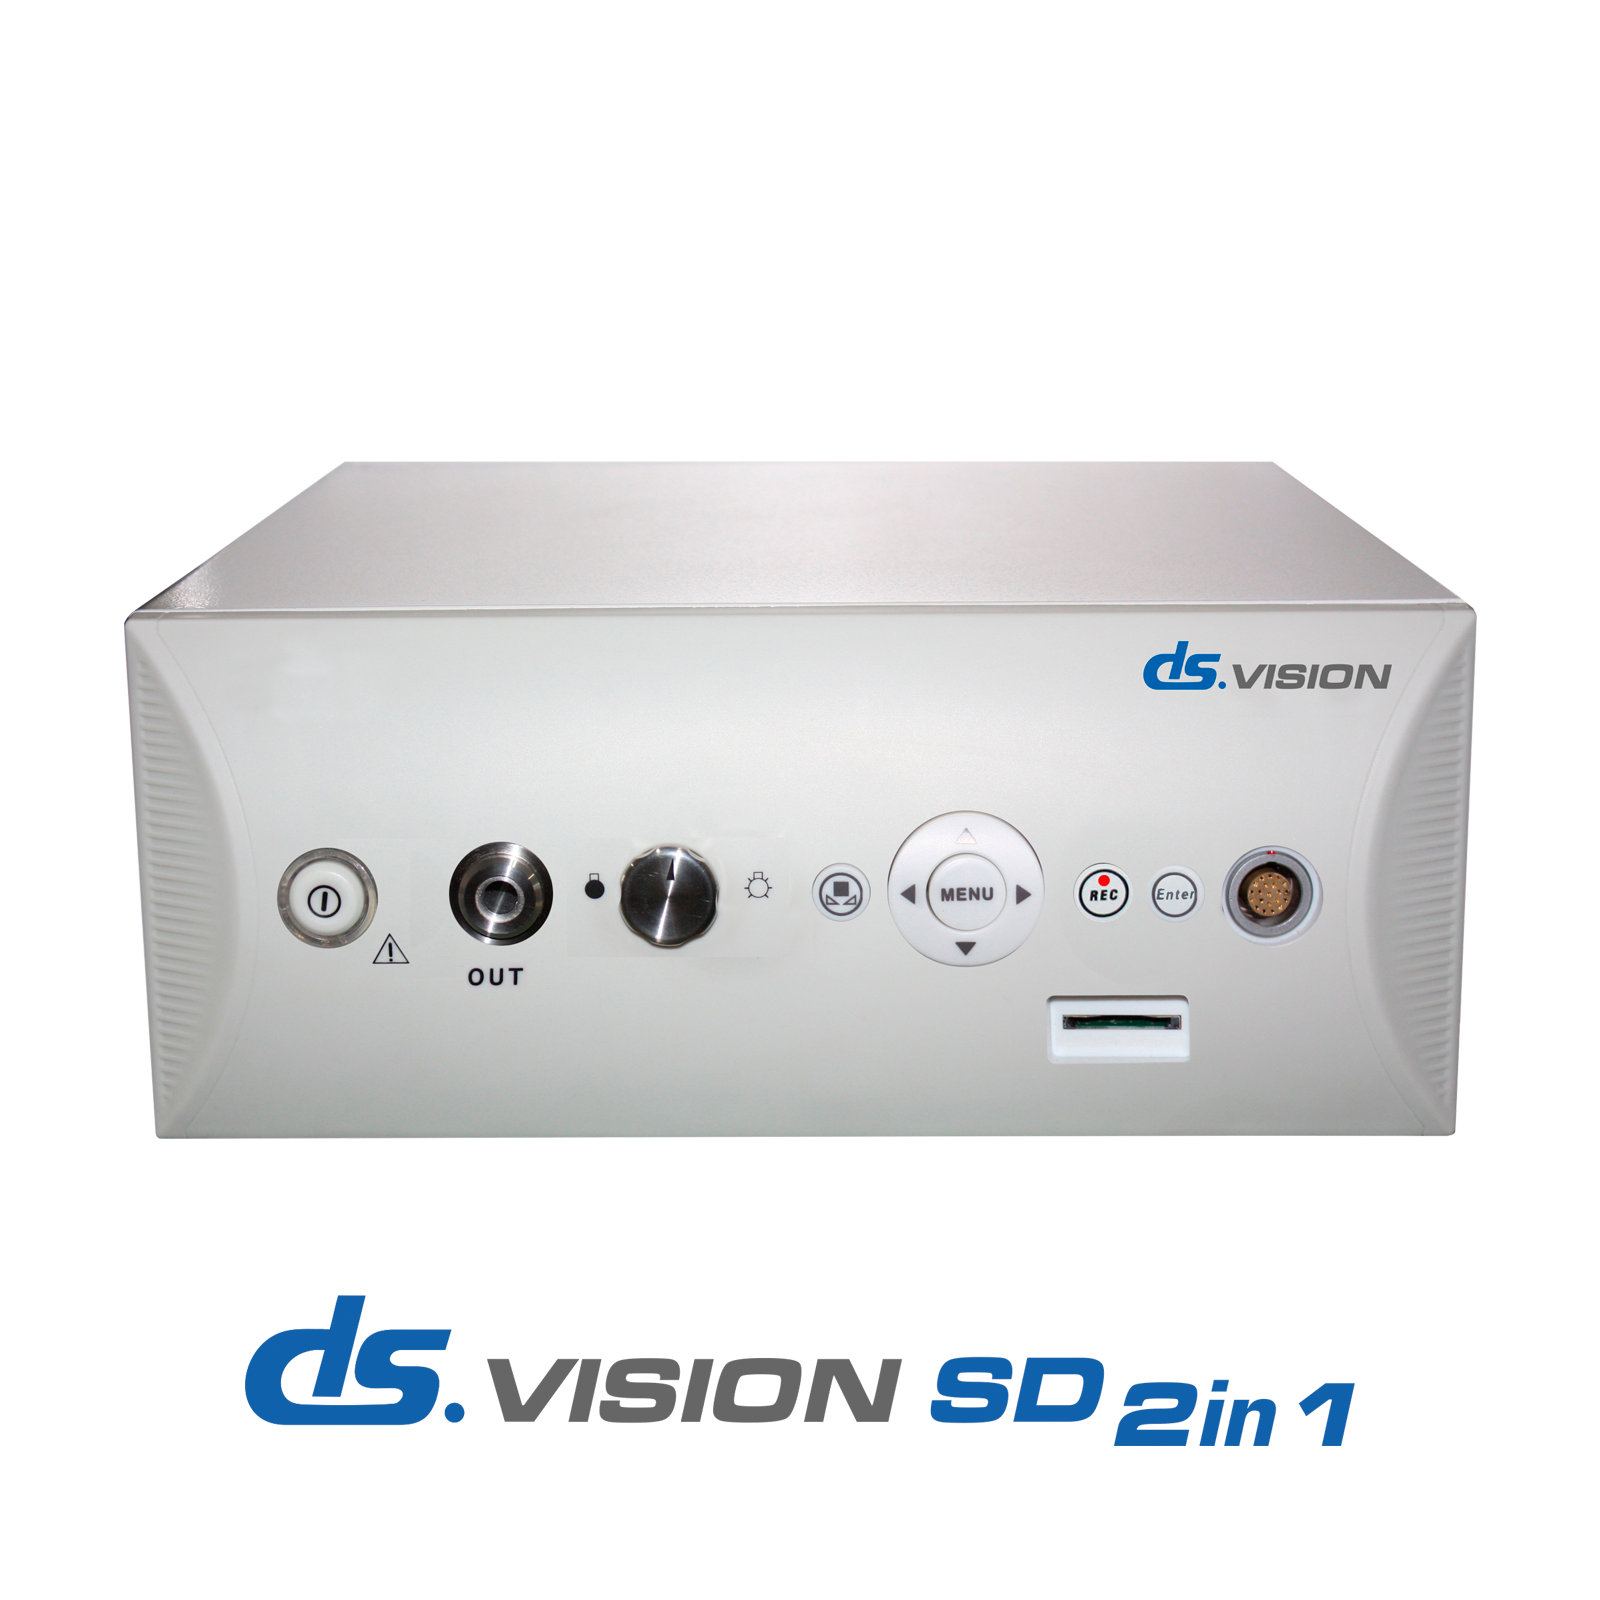 DS.Vision 2in1